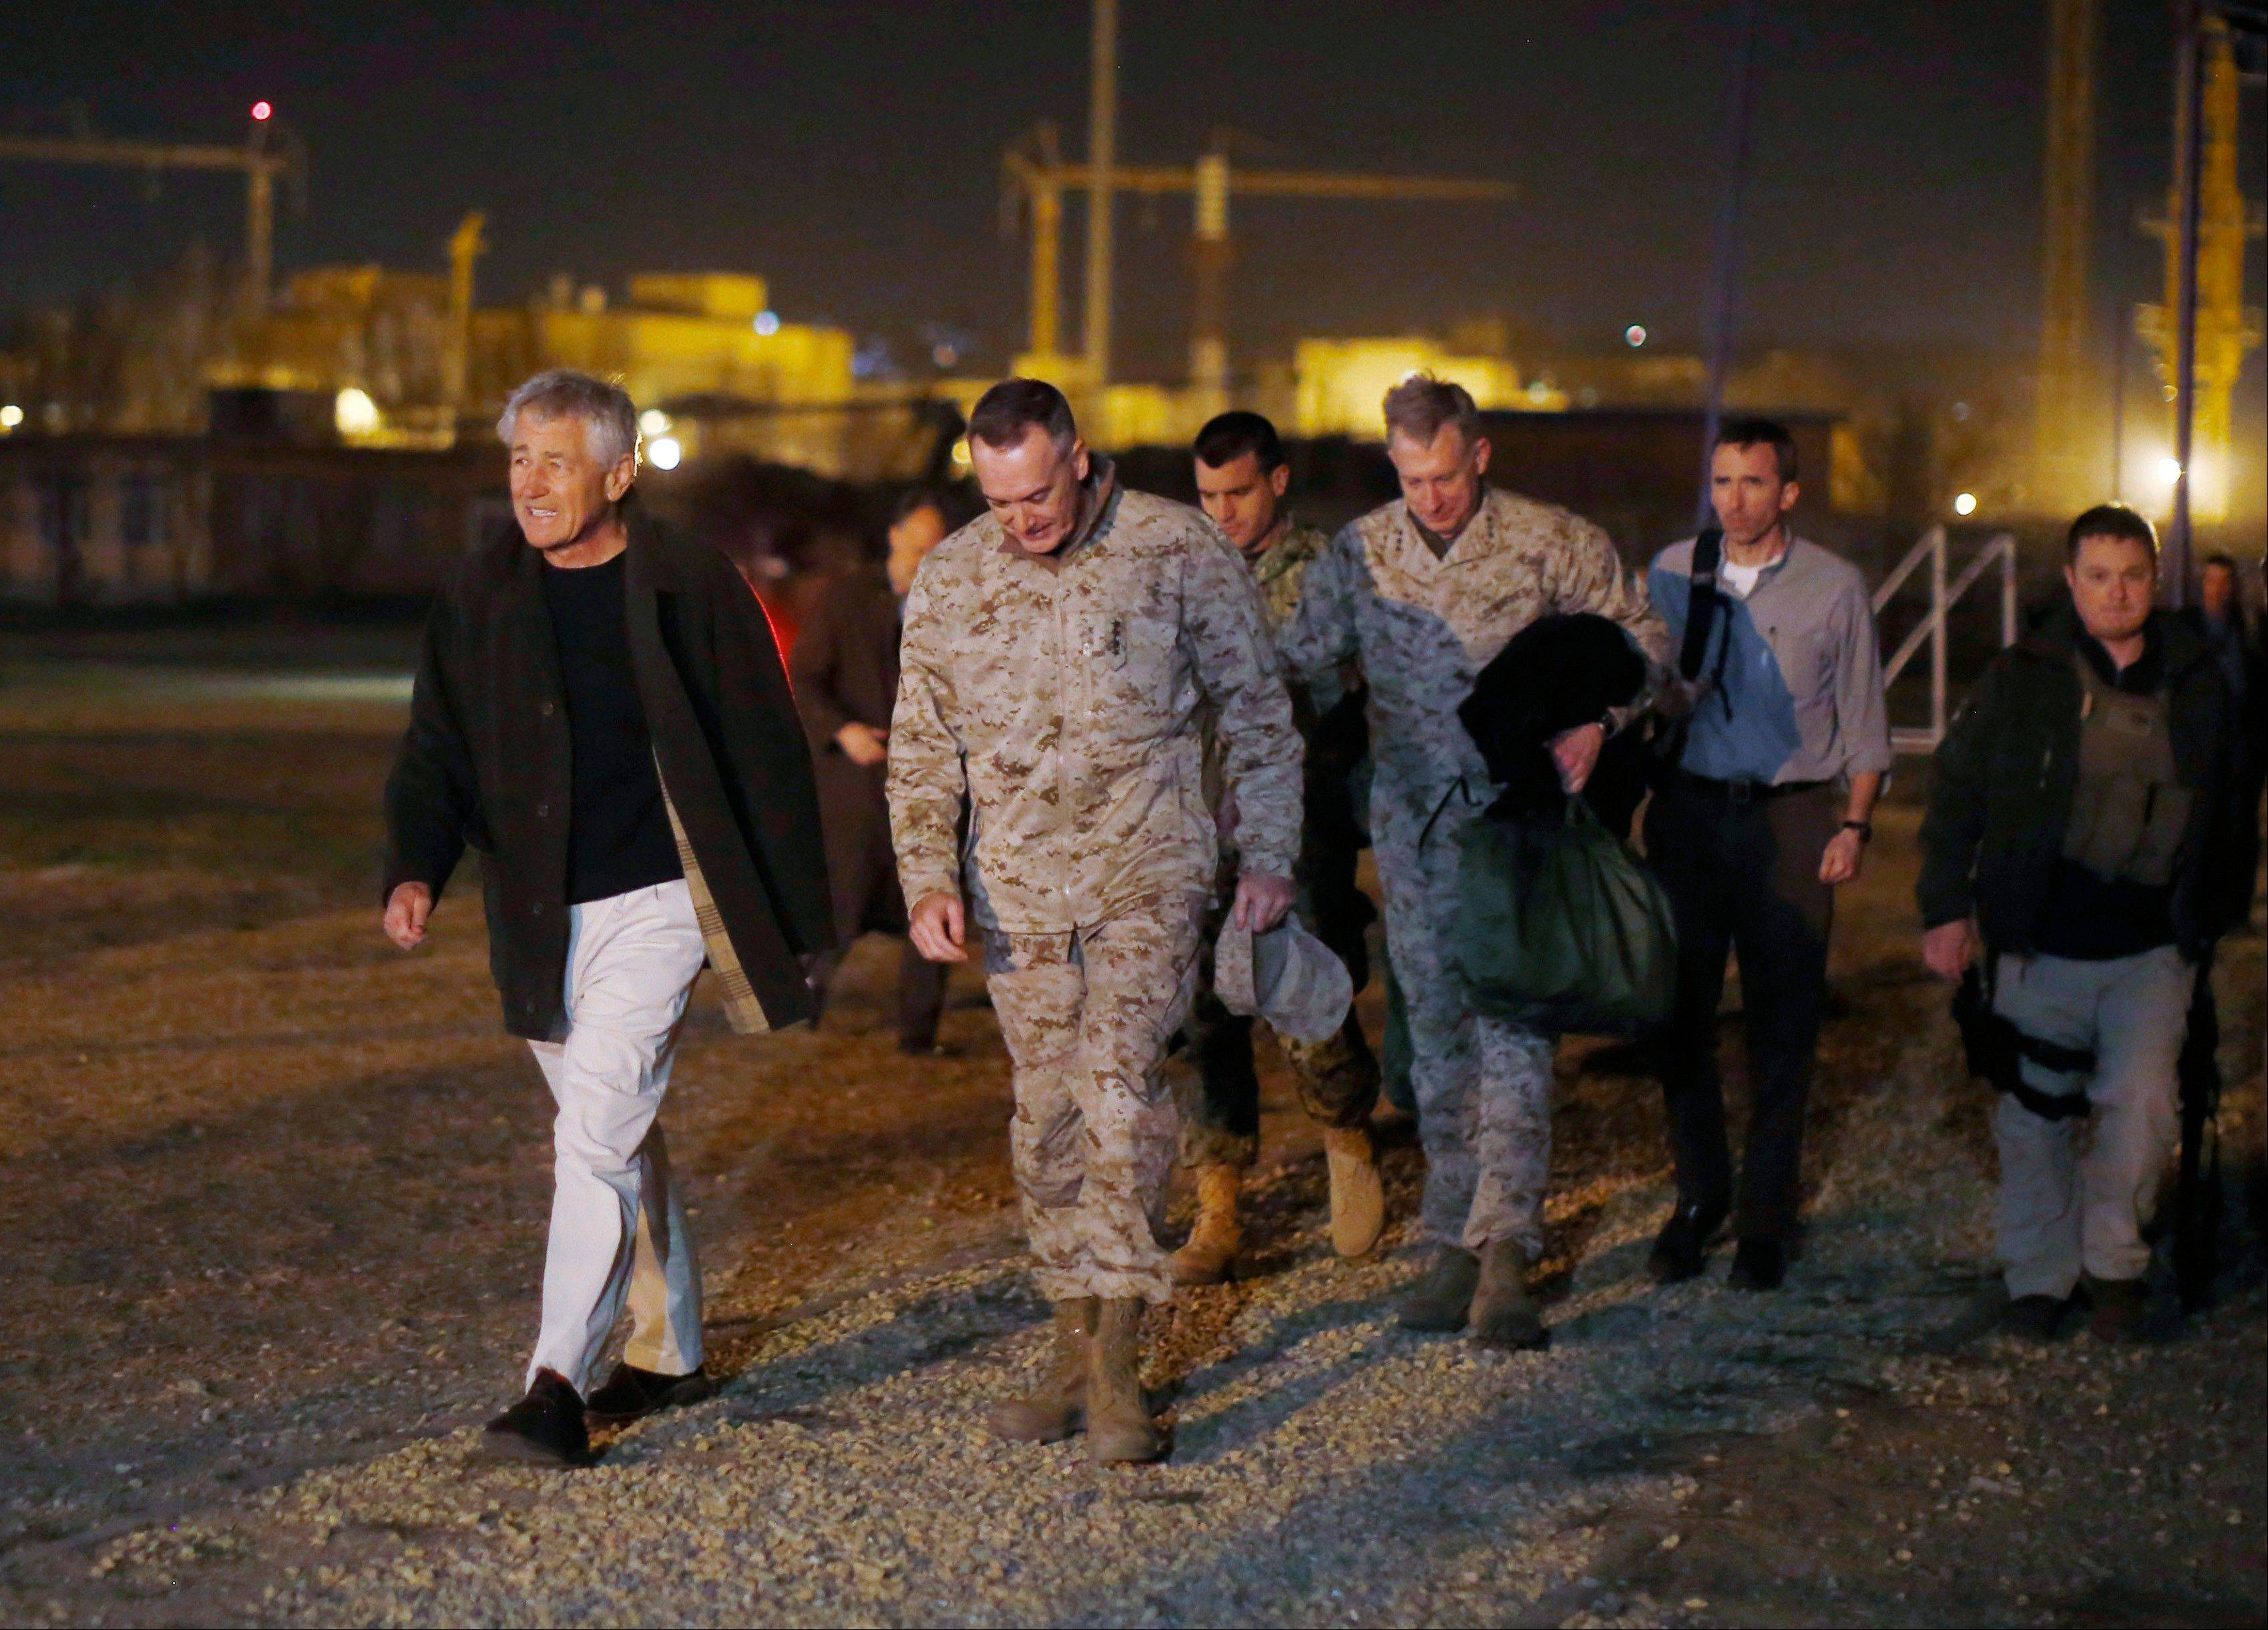 Defense Secretary Chuck Hagel walks Friday with U.S. Marine General Joseph Dunford, commander of the International Security Force, upon Hagel's arrival near Camp Eggers in Kabul, Afghanistan.